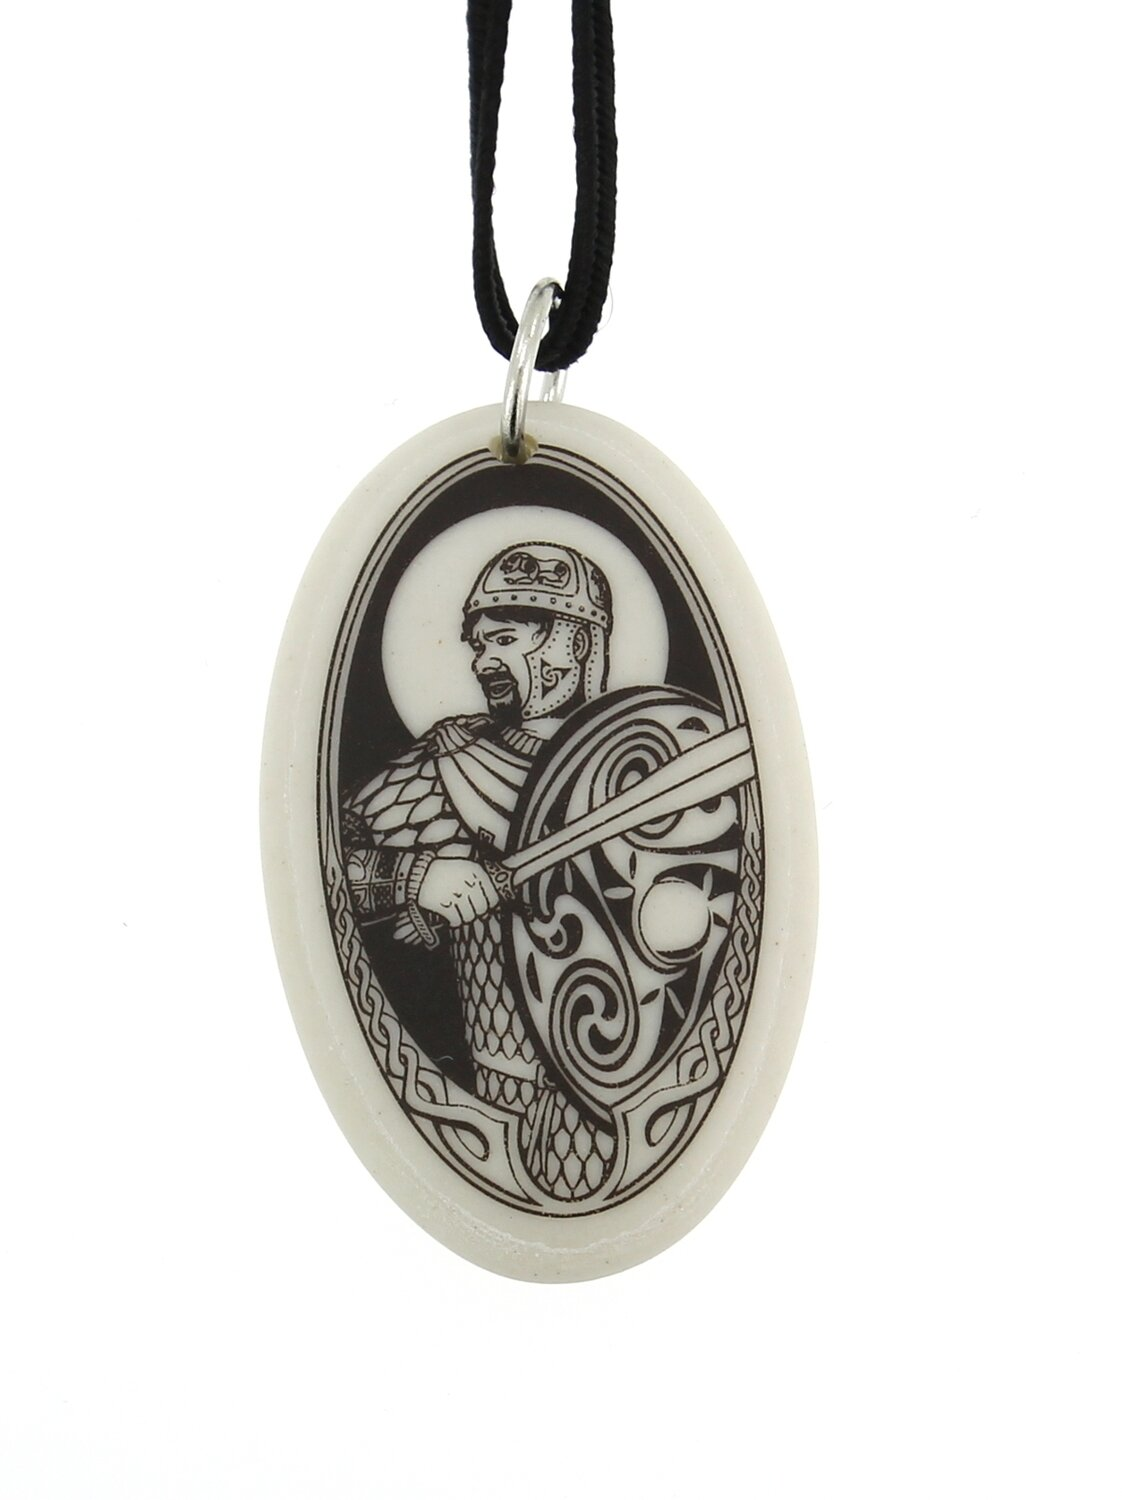 The Knight Lancelot Oval Handmade Porcelain Pendant